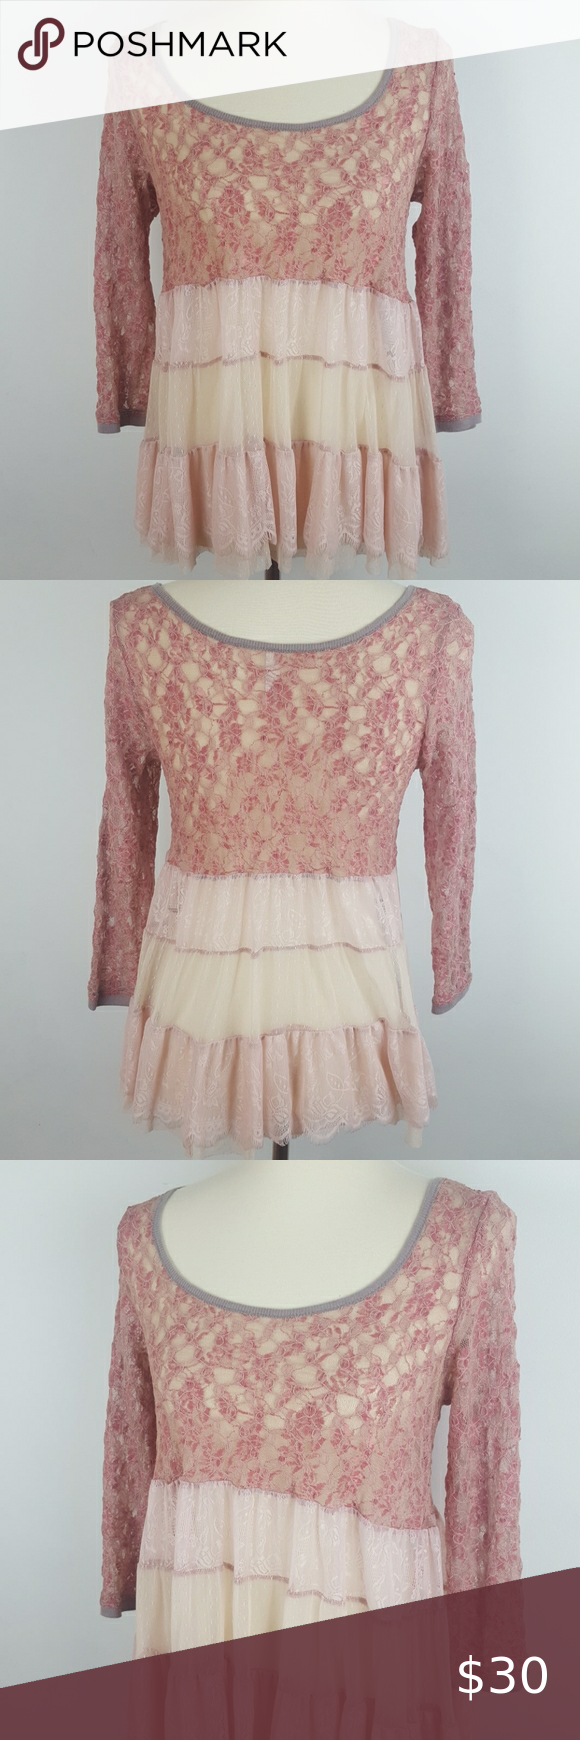 Free People Top Free People Top. Size Small Petite. In good condition! Absolutely beautiful free people piece. Light weight. Perfect for spring! Would look cute with a pair of skinny jeans.  #0728 ◾Length 22.5